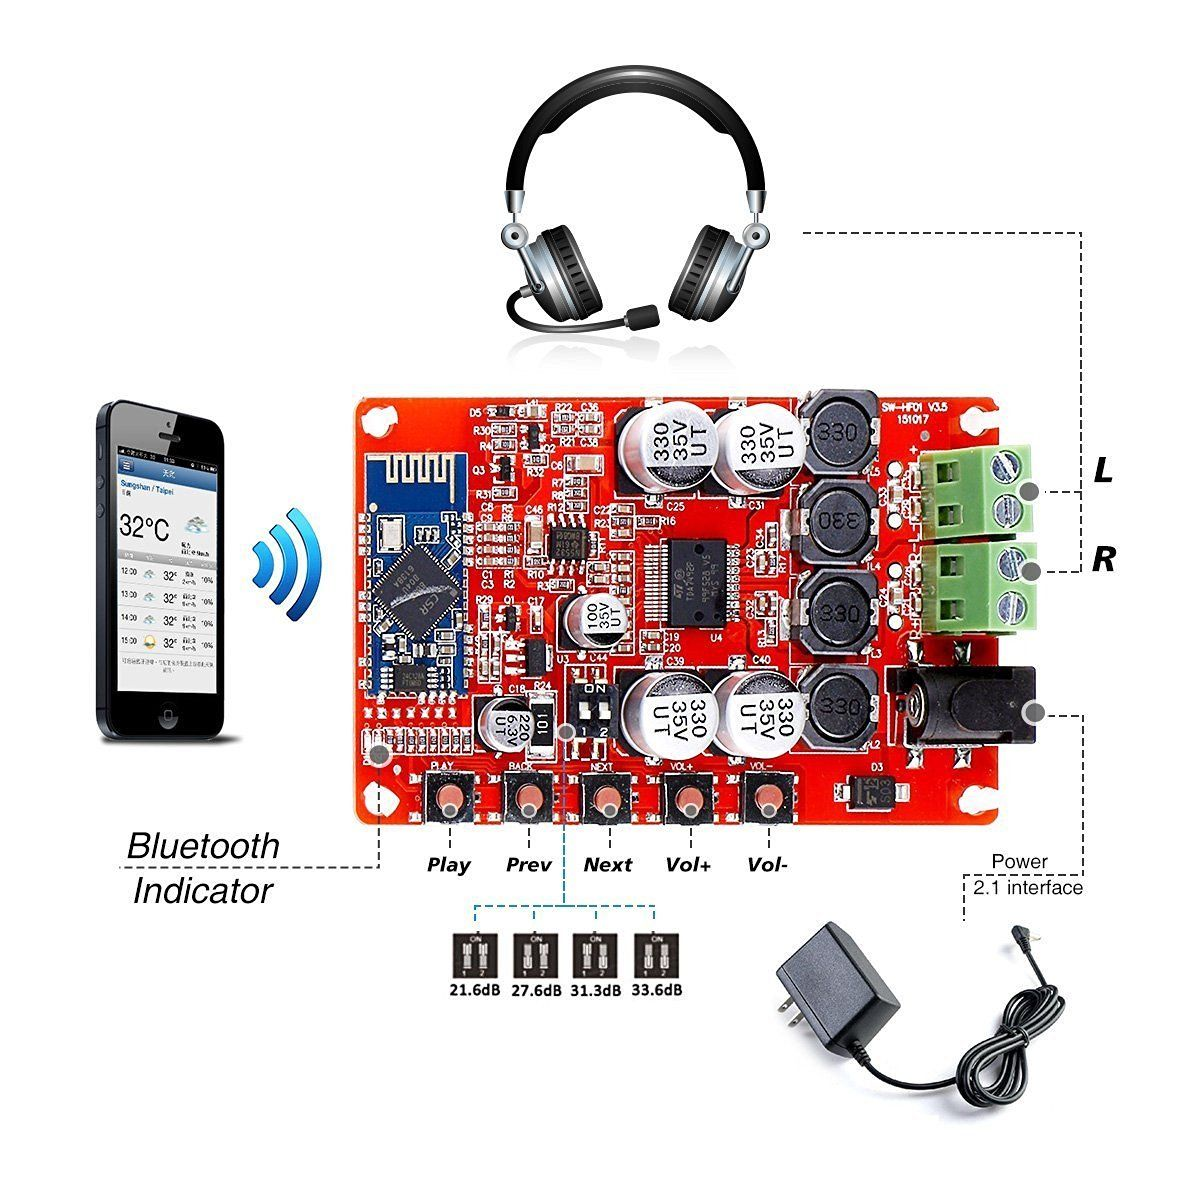 Tda7492p 2 X 50 Watt Dual Channel Amplifier Wireless Digital Mosfet Electronic Circuits And Diagramelectronics Bluetooth 40 Audio Receiver Board 50w